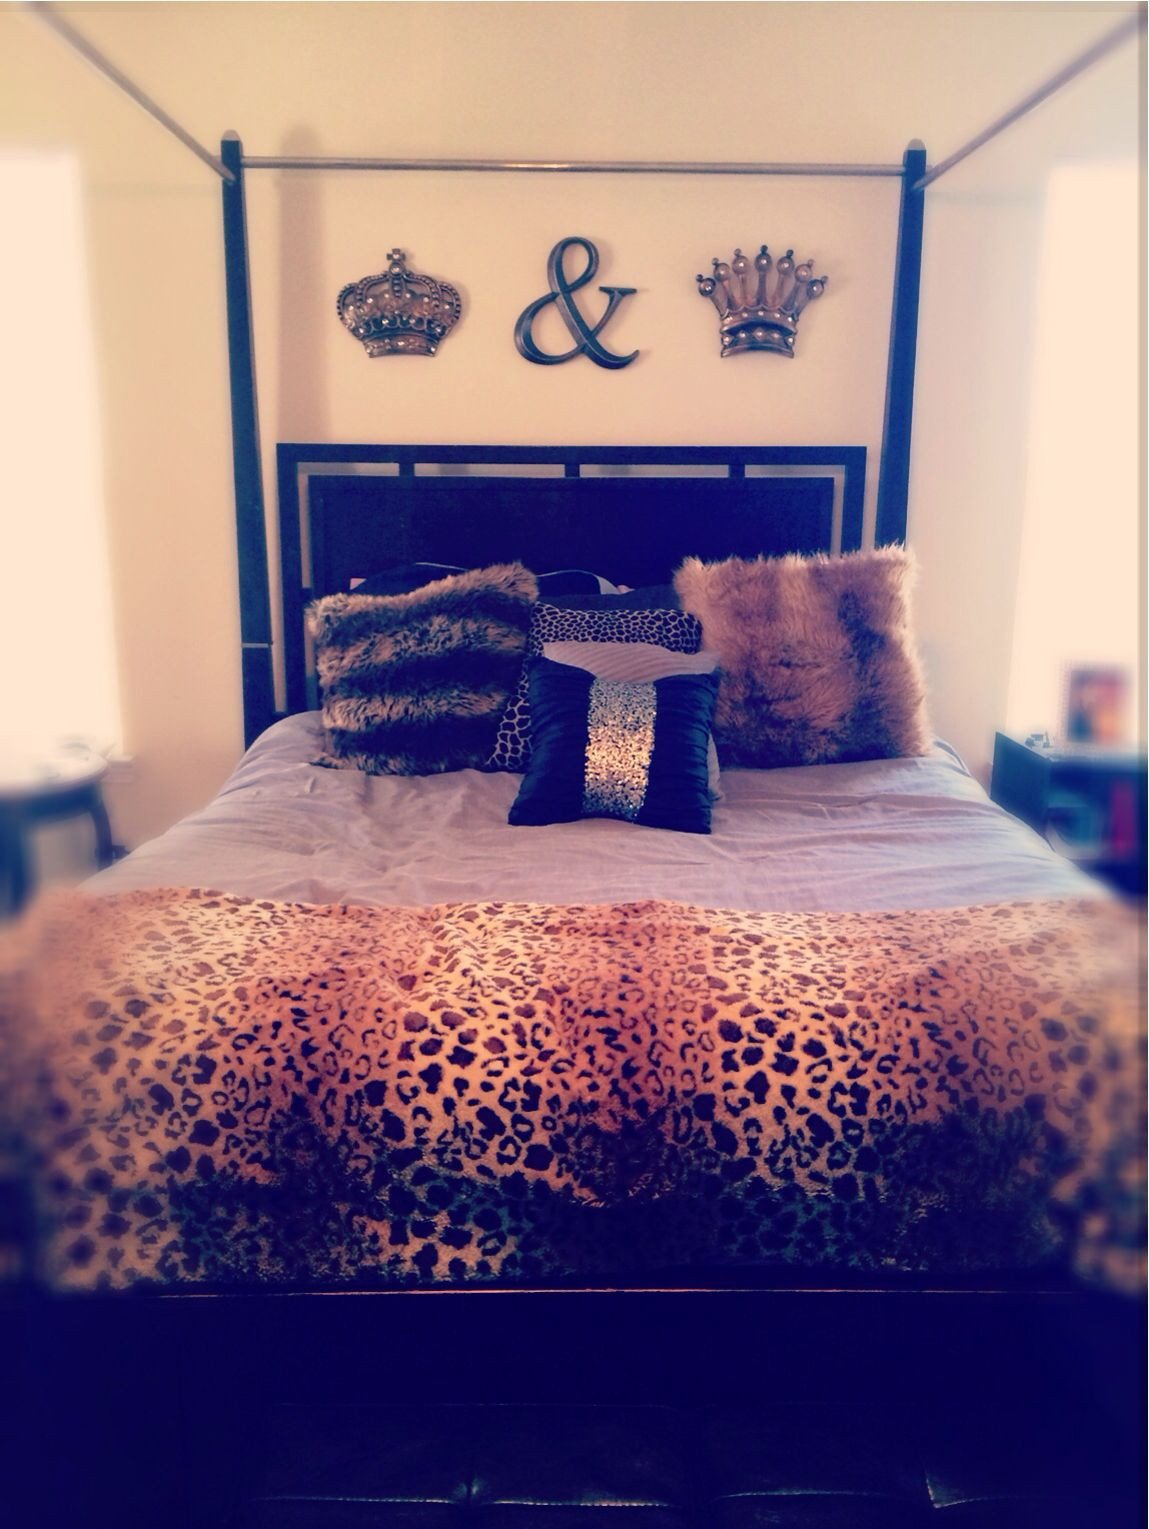 King and Queen Bedroom Decor Beautiful King and Queen Bedroom Decor Over Our Bed now to Add Paint but I Love It